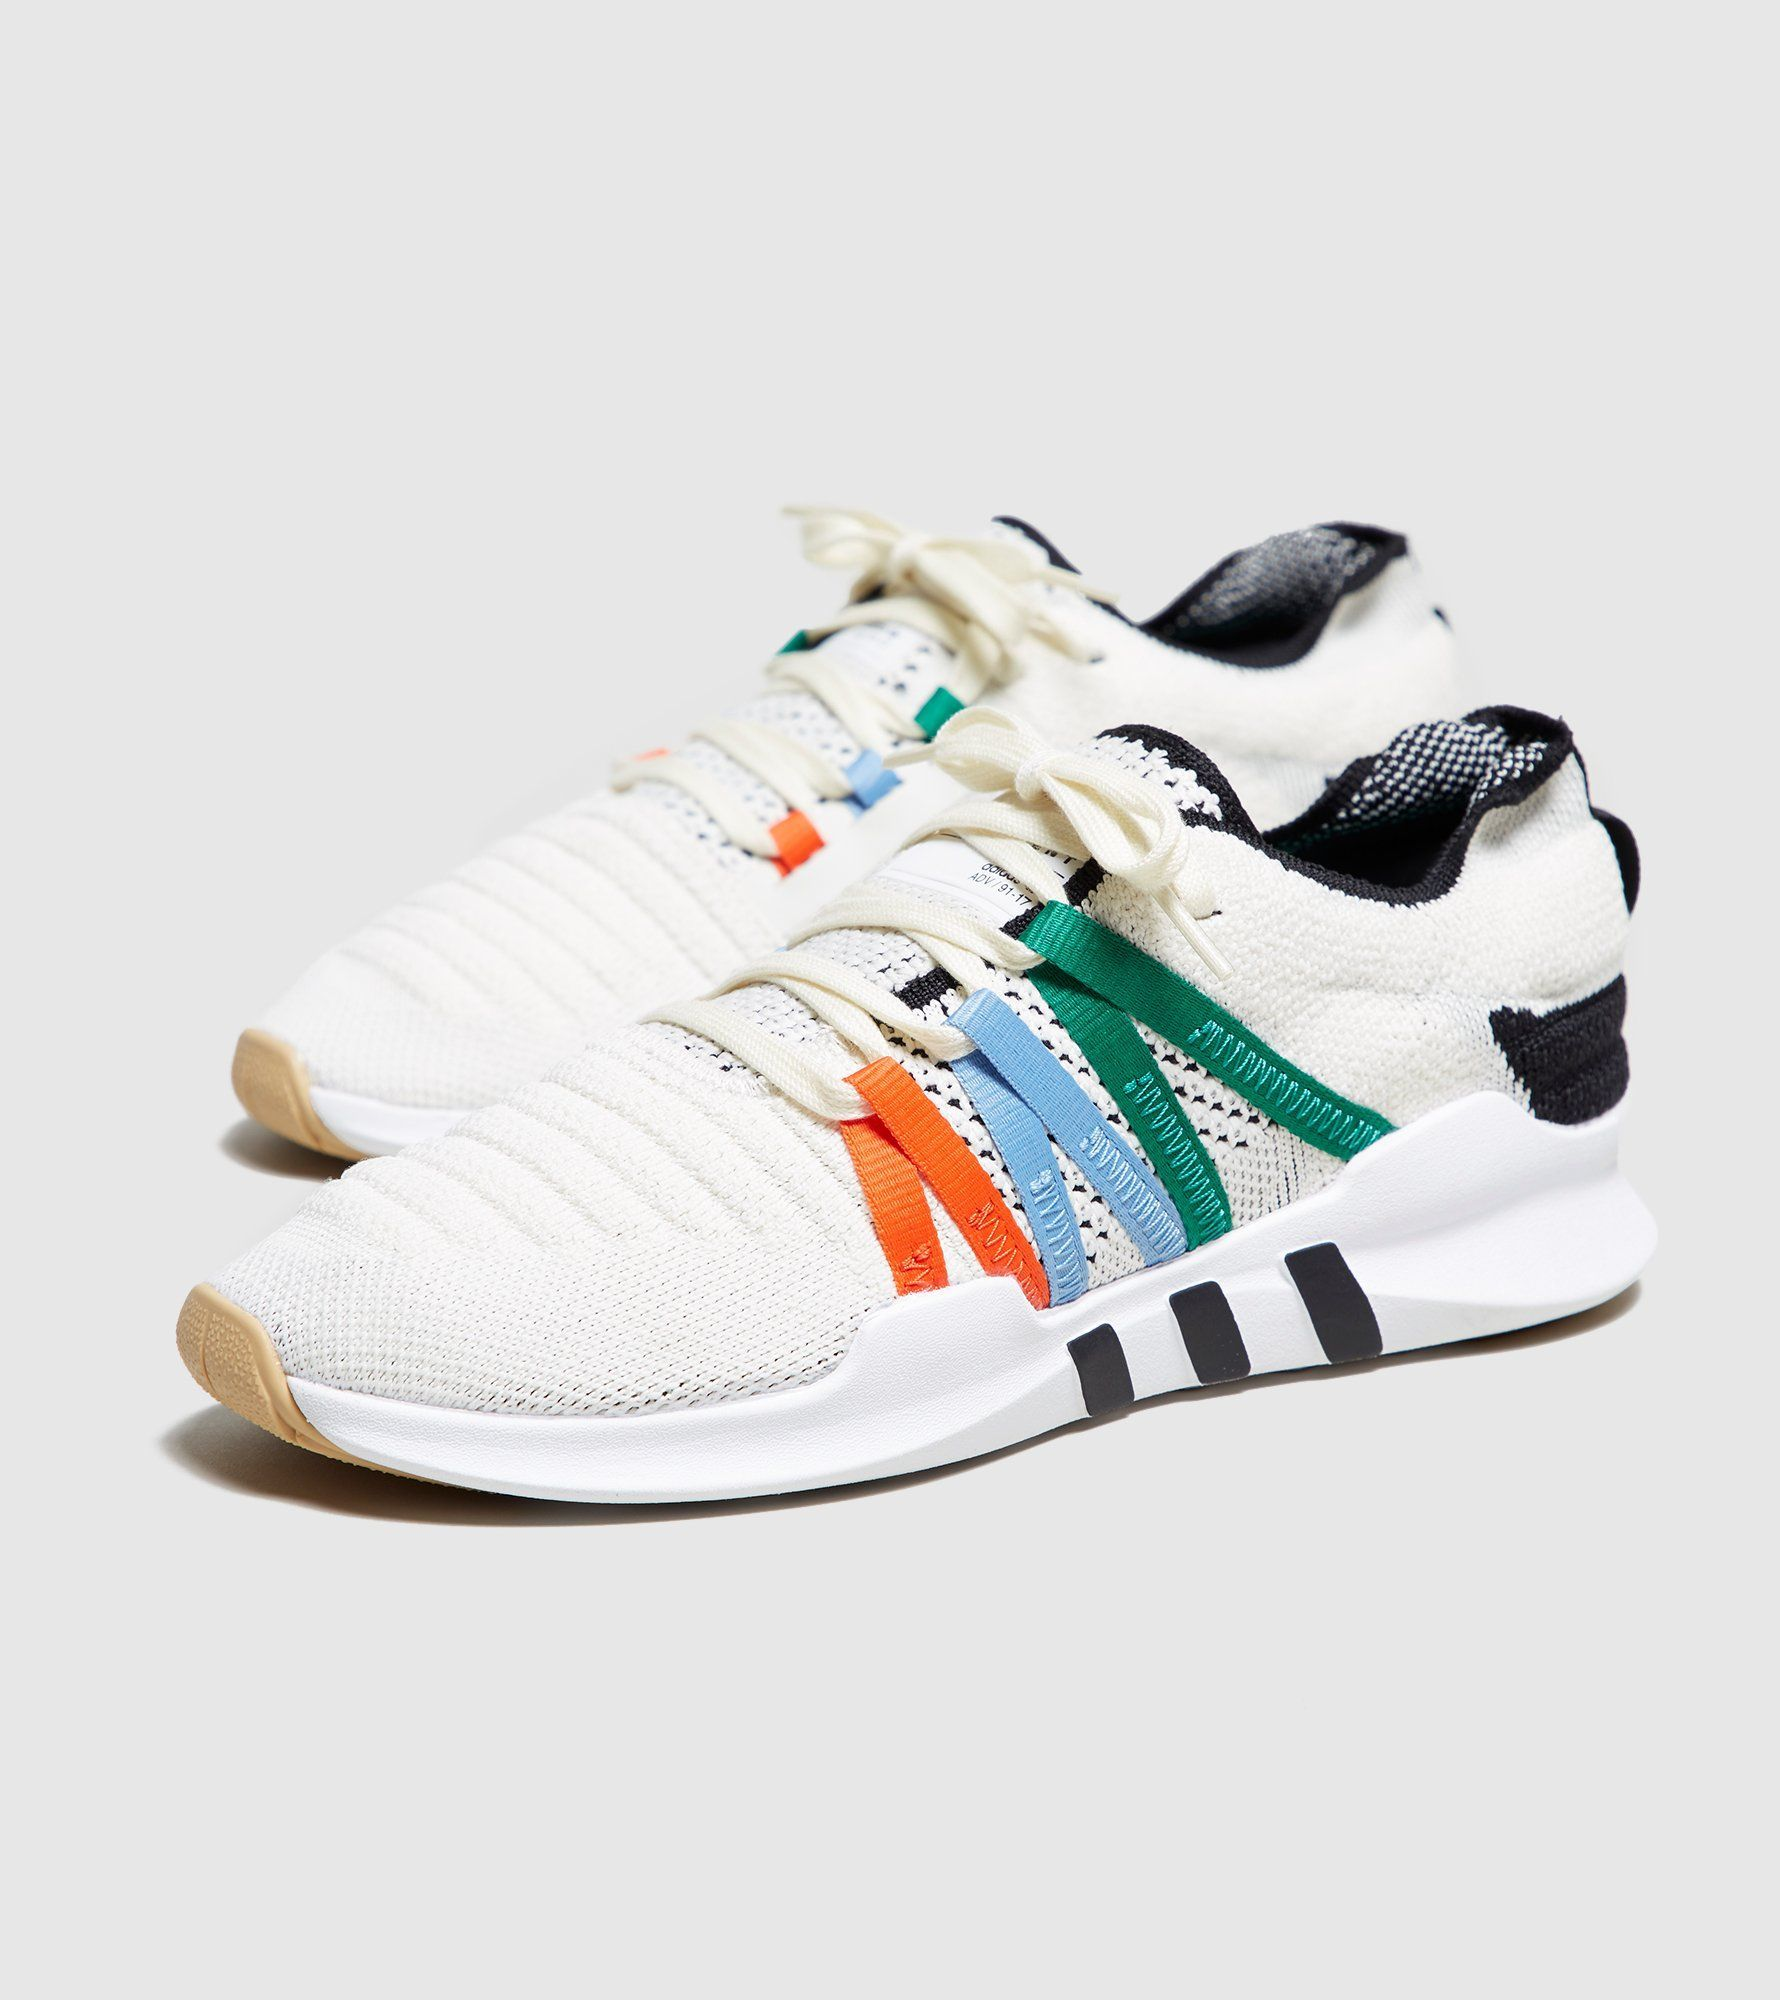 sale retailer 6f3a8 b5d9a adidas Originals EQT Racing ADV Womens - find out more on our site. Find  the freshest in trainers and clothing online now.